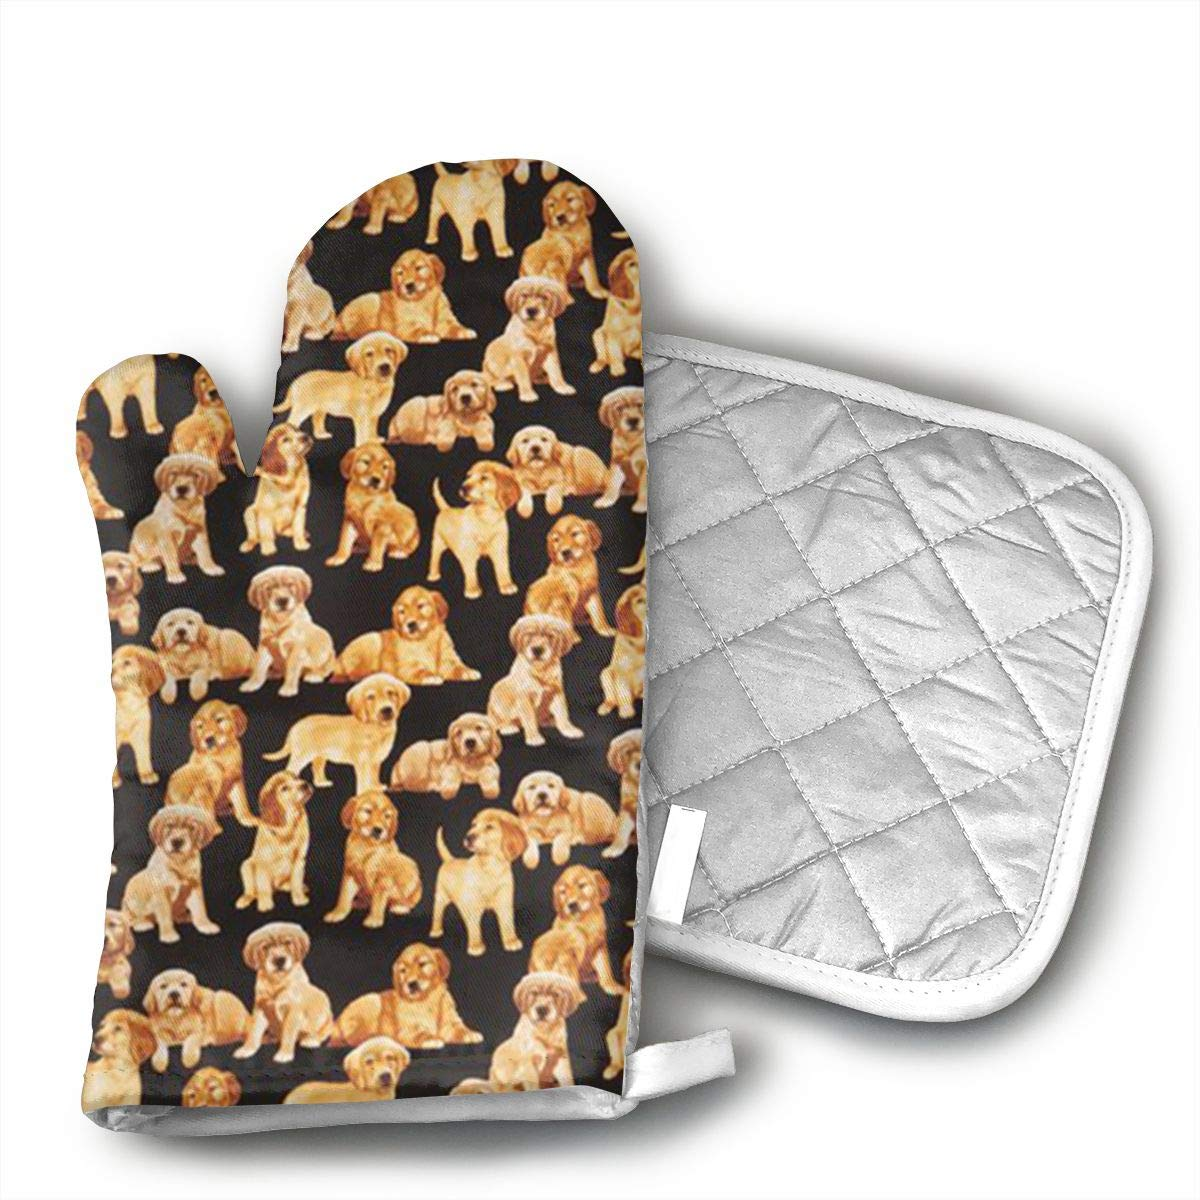 Ksiwo Black Golden Retriever Dog Puppy Oven Mitts and Pot Holders Heat Resistant Gloves to Oven Gloves for Safe BBQ Cook Baking Grilling